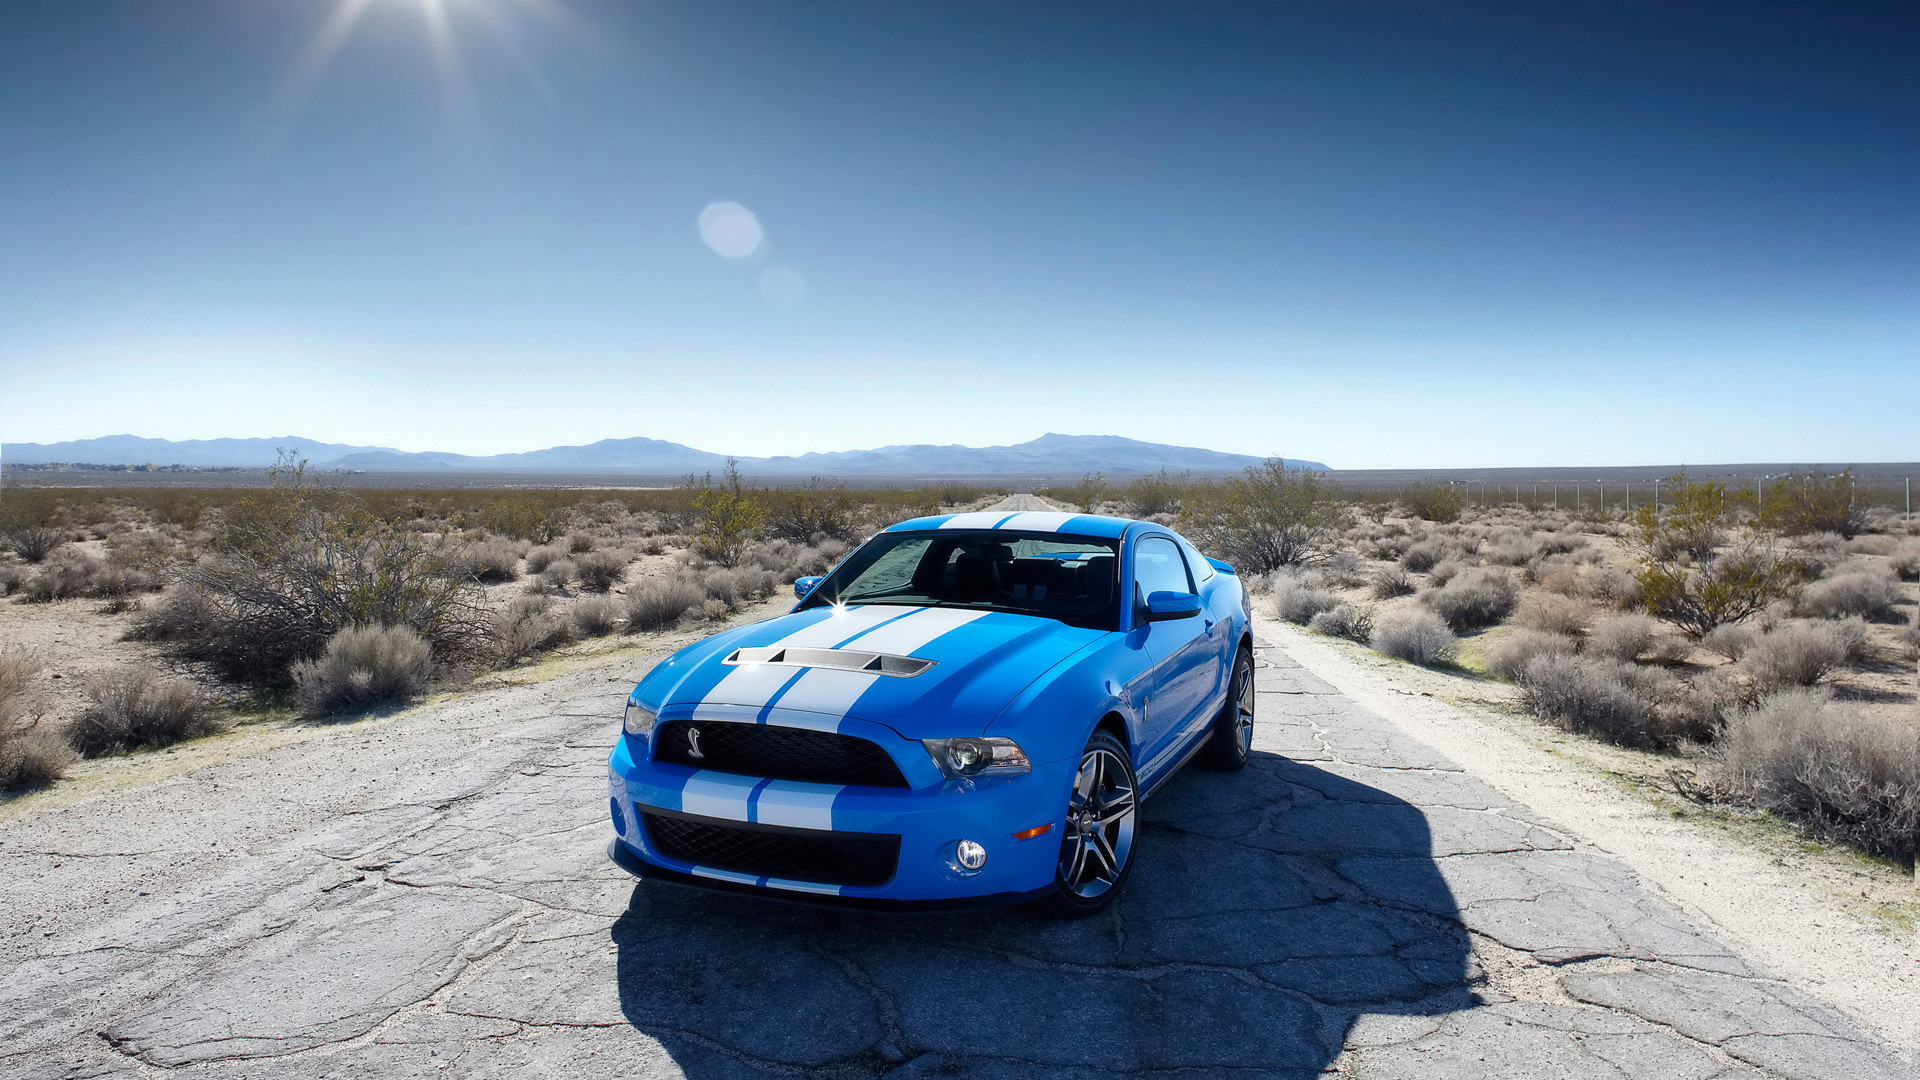 Car wallpapers: Ford Mustang Shelby Cobra